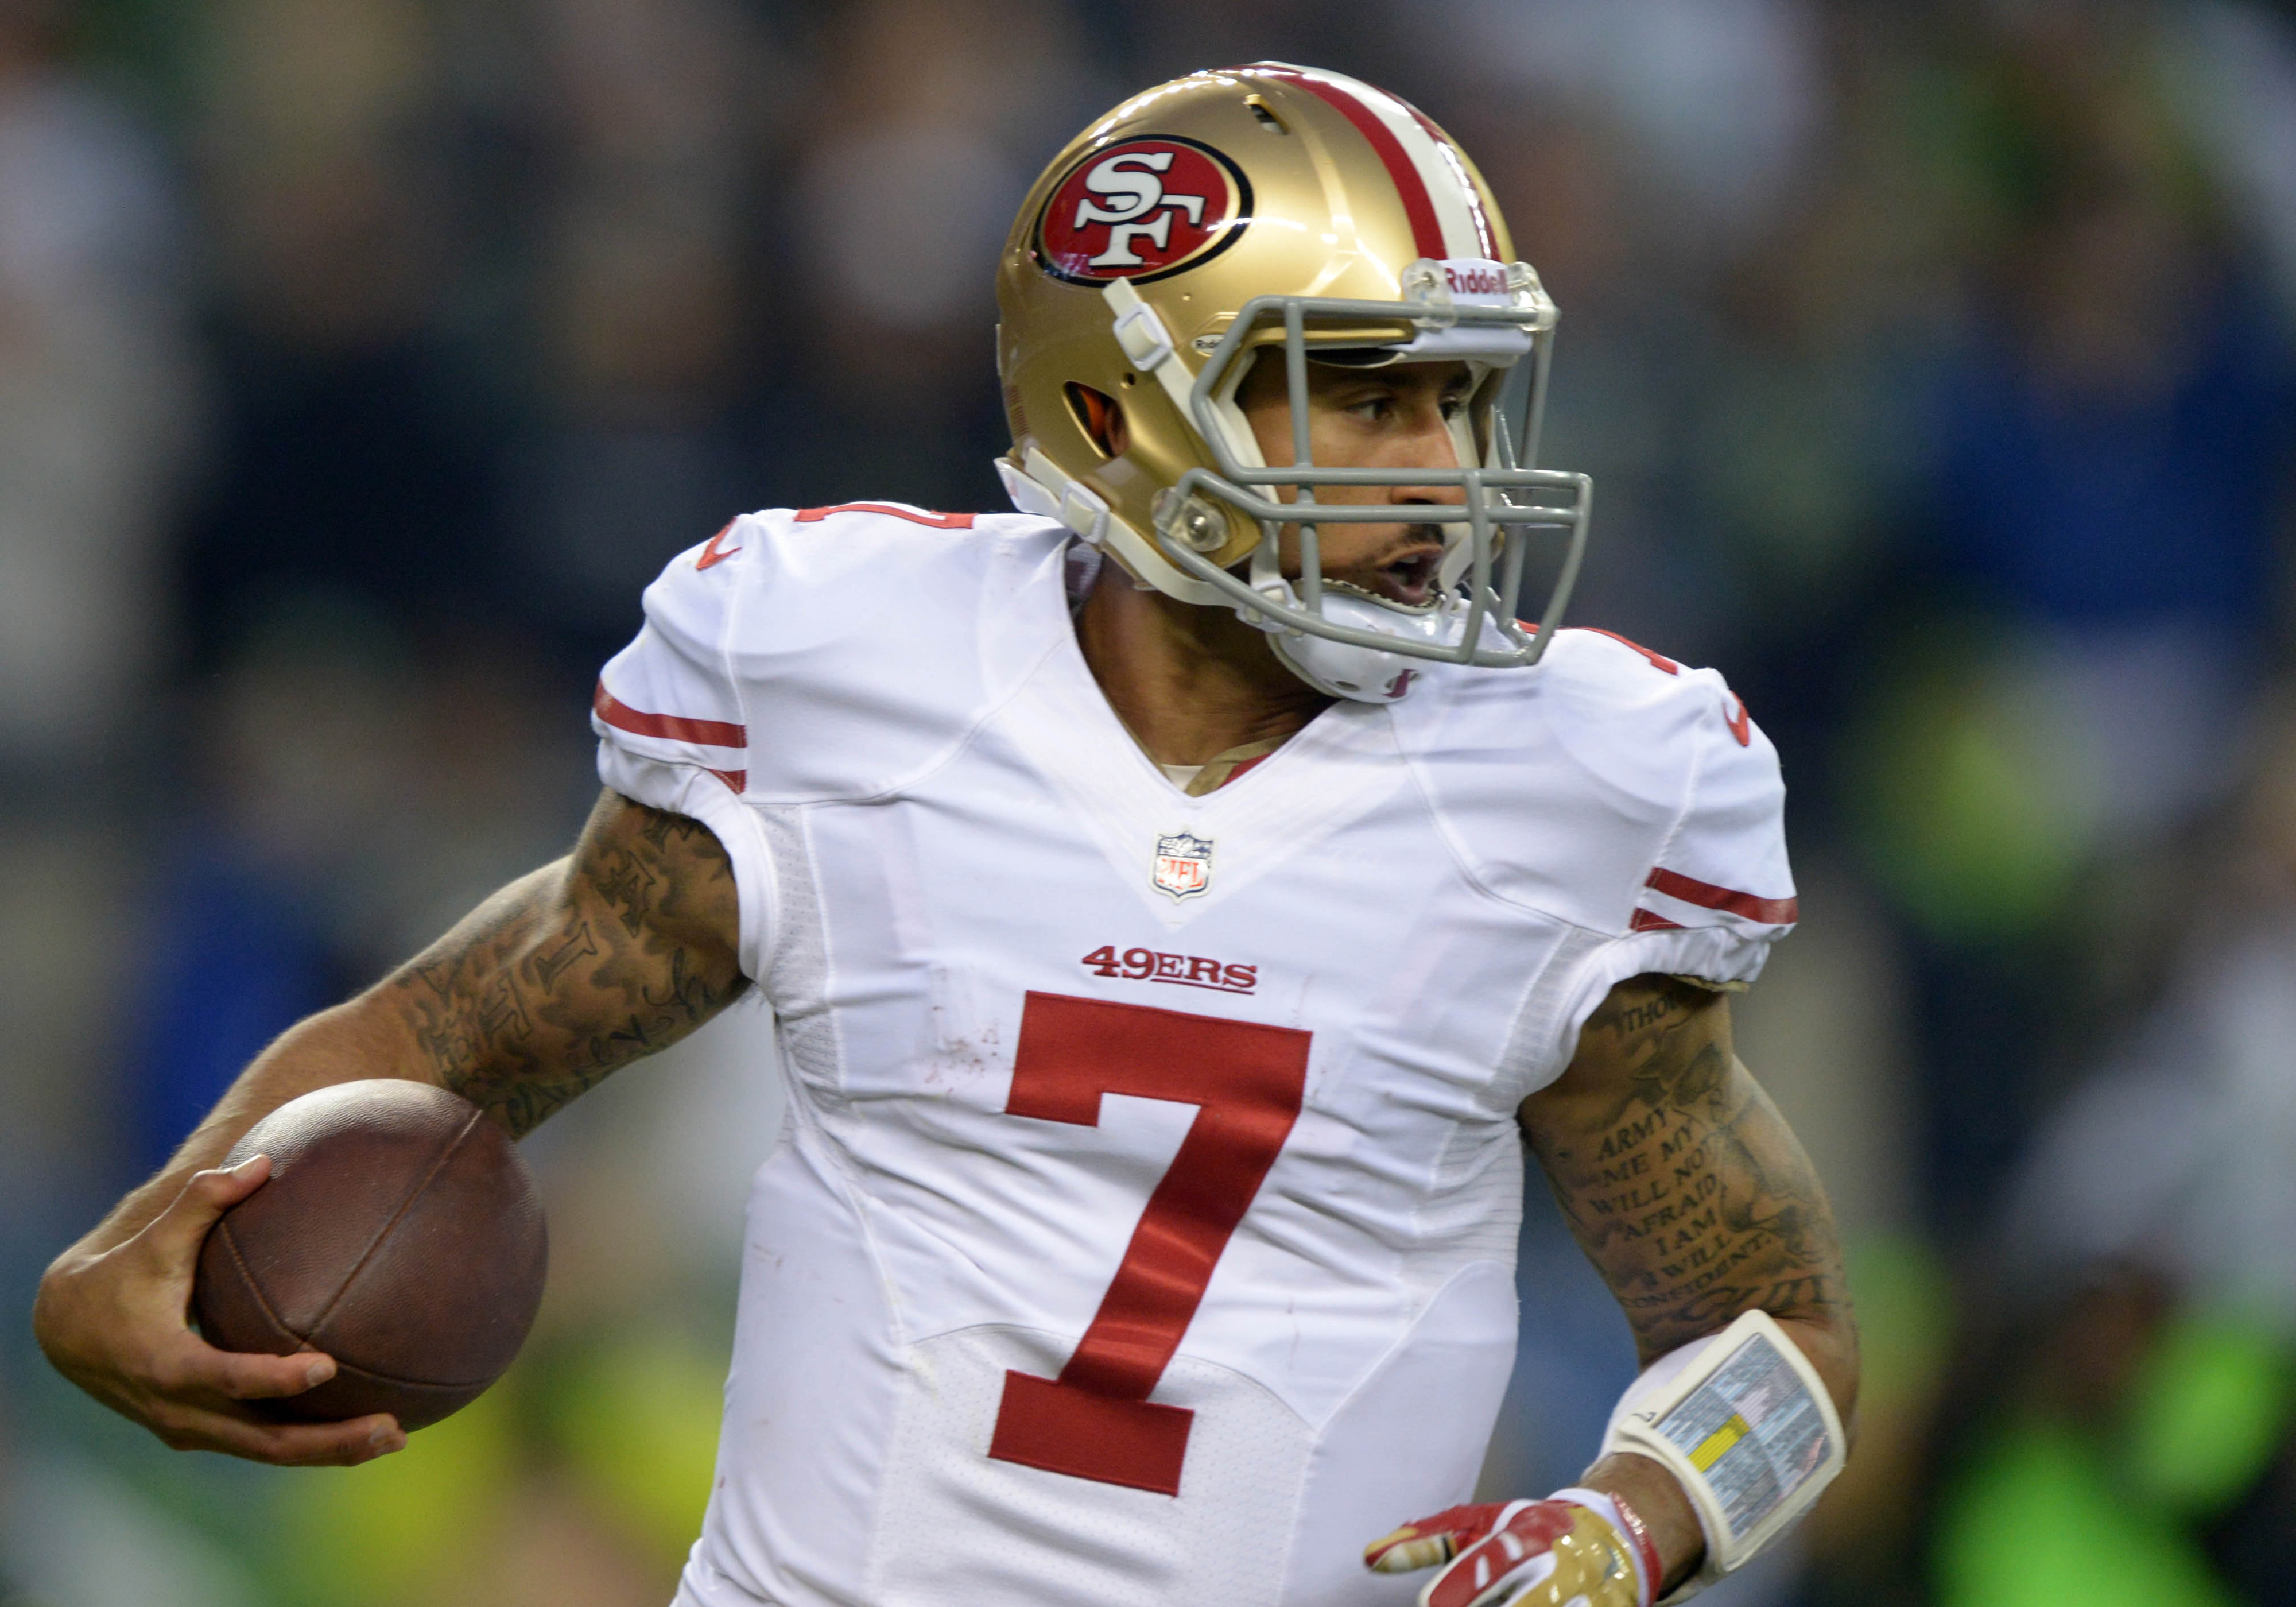 Kaepernick has poise enough to have beaten the Broncos.